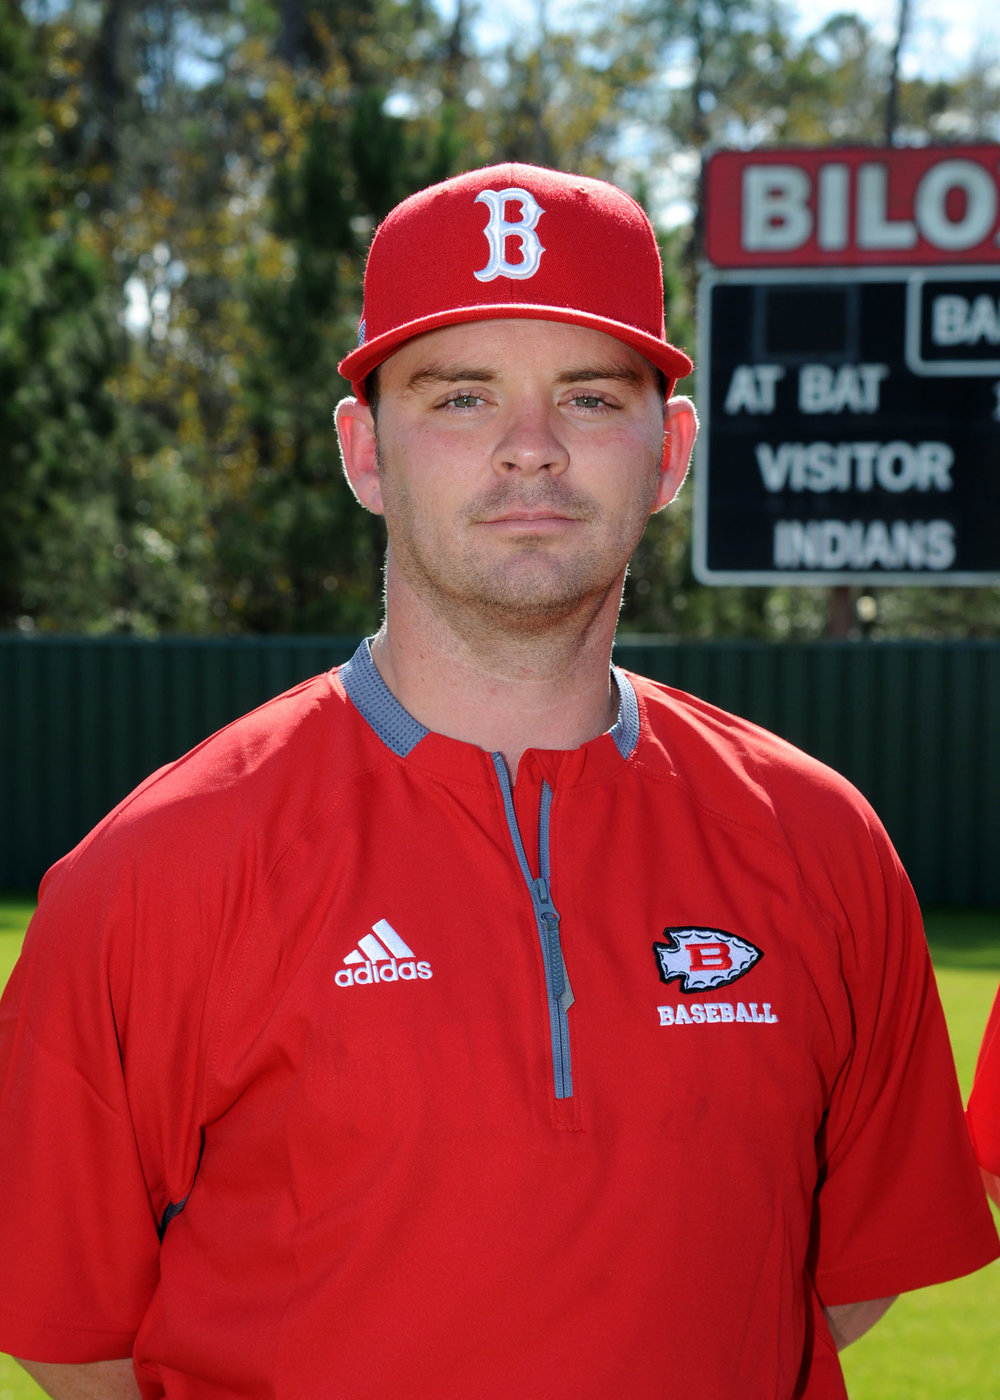 Brent Martin  - Coaching History: 2015 – Present Assistant Coach Biloxi High School 2011 – 2015 Assistant Coach Ridgeland High School 2007 – 2010 Assistant Coach Henderson State UniversityEducation/Experience:BSE from Henderson State University Major: Kinesiology    Minor: Mathematics and HealthFamily: Wife – Courtney MartinDaughters – Adelaide Martin (13) & Madison Martin (11)Son – Maddux Martin (6)Outlook for 2018: 2018 looks to be a promising year. We have great senior leadership both on and off the field. We have several guys that are set to have break-out seasons both in the field and at the plate. The intensity this group of guys brings every day to the diamond is going to fun to watch!